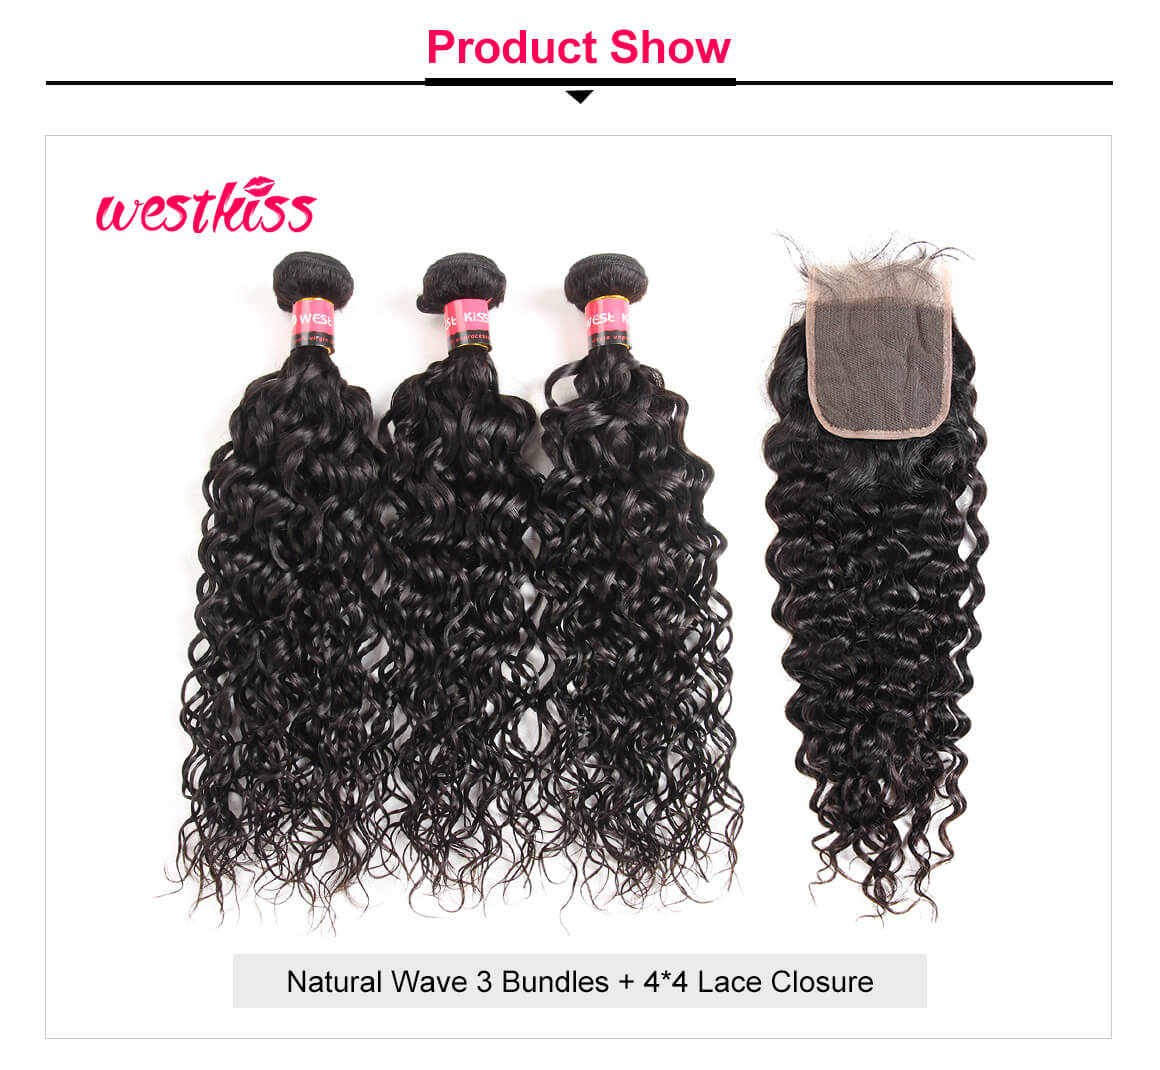 Natural Wave 3 Bundles Lace Closure